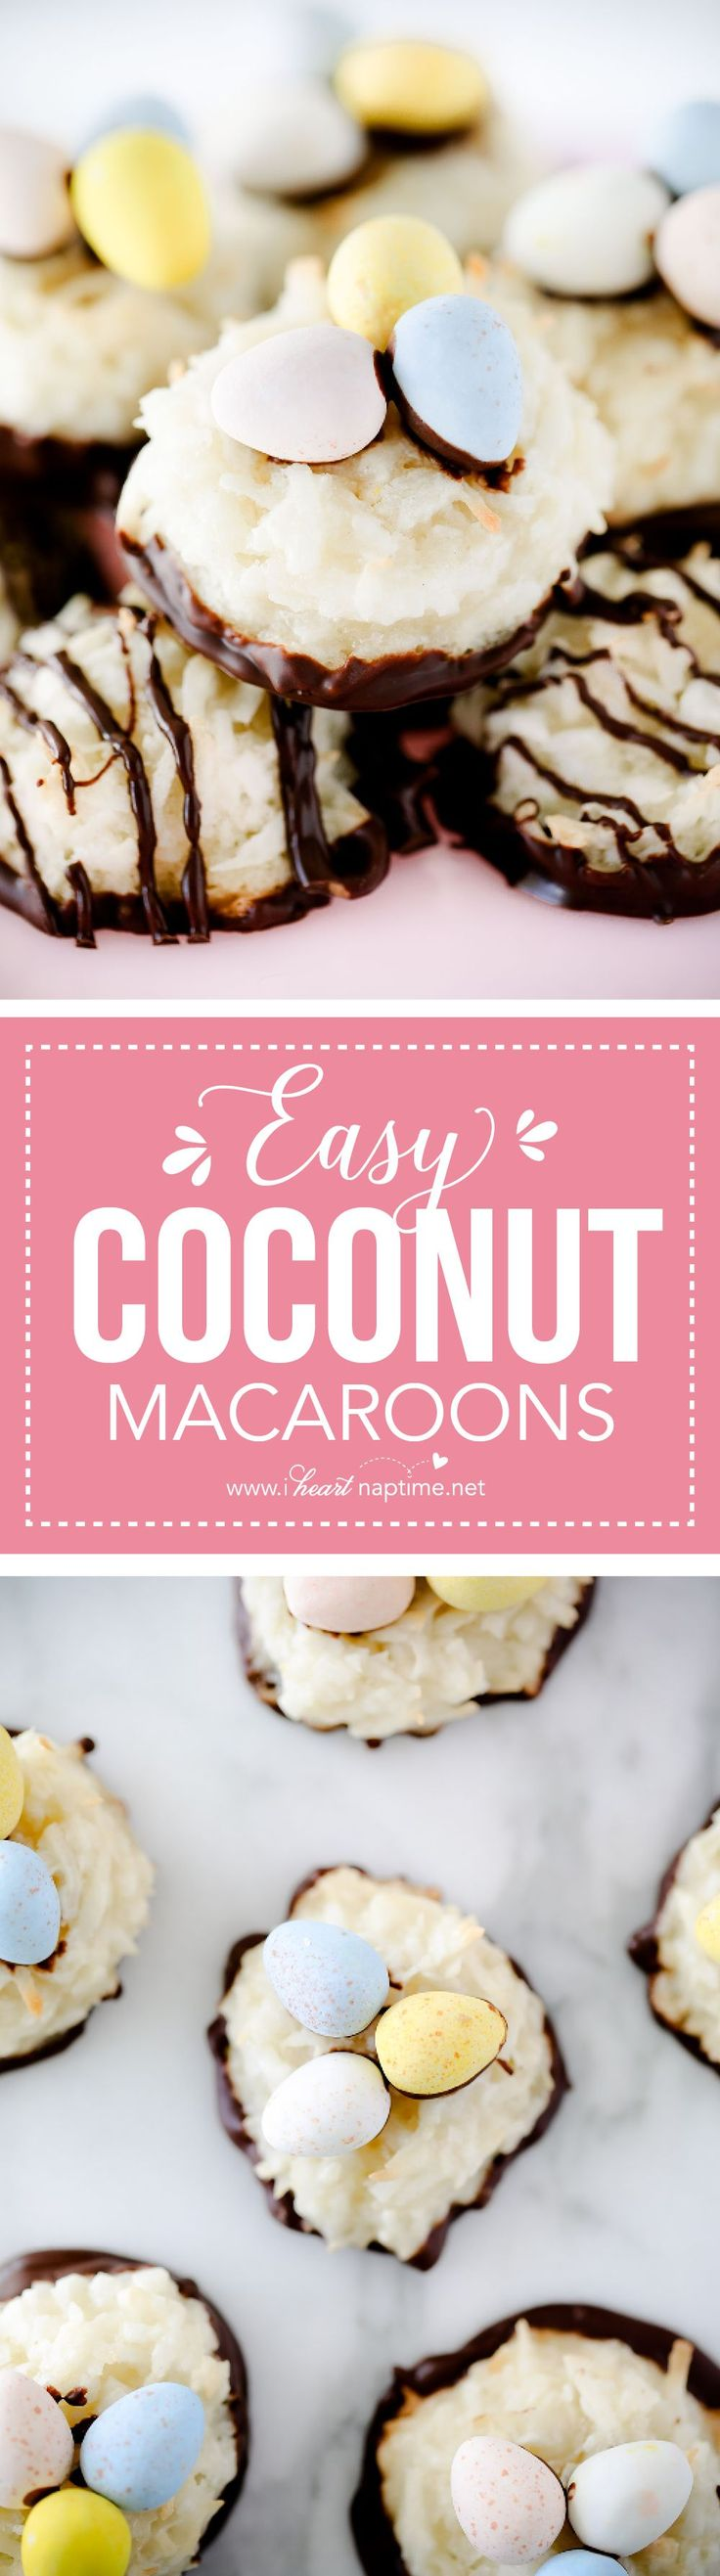 Easy Coconut Macaroons -so easy to make! You only need 6 ingredients and one bowl!